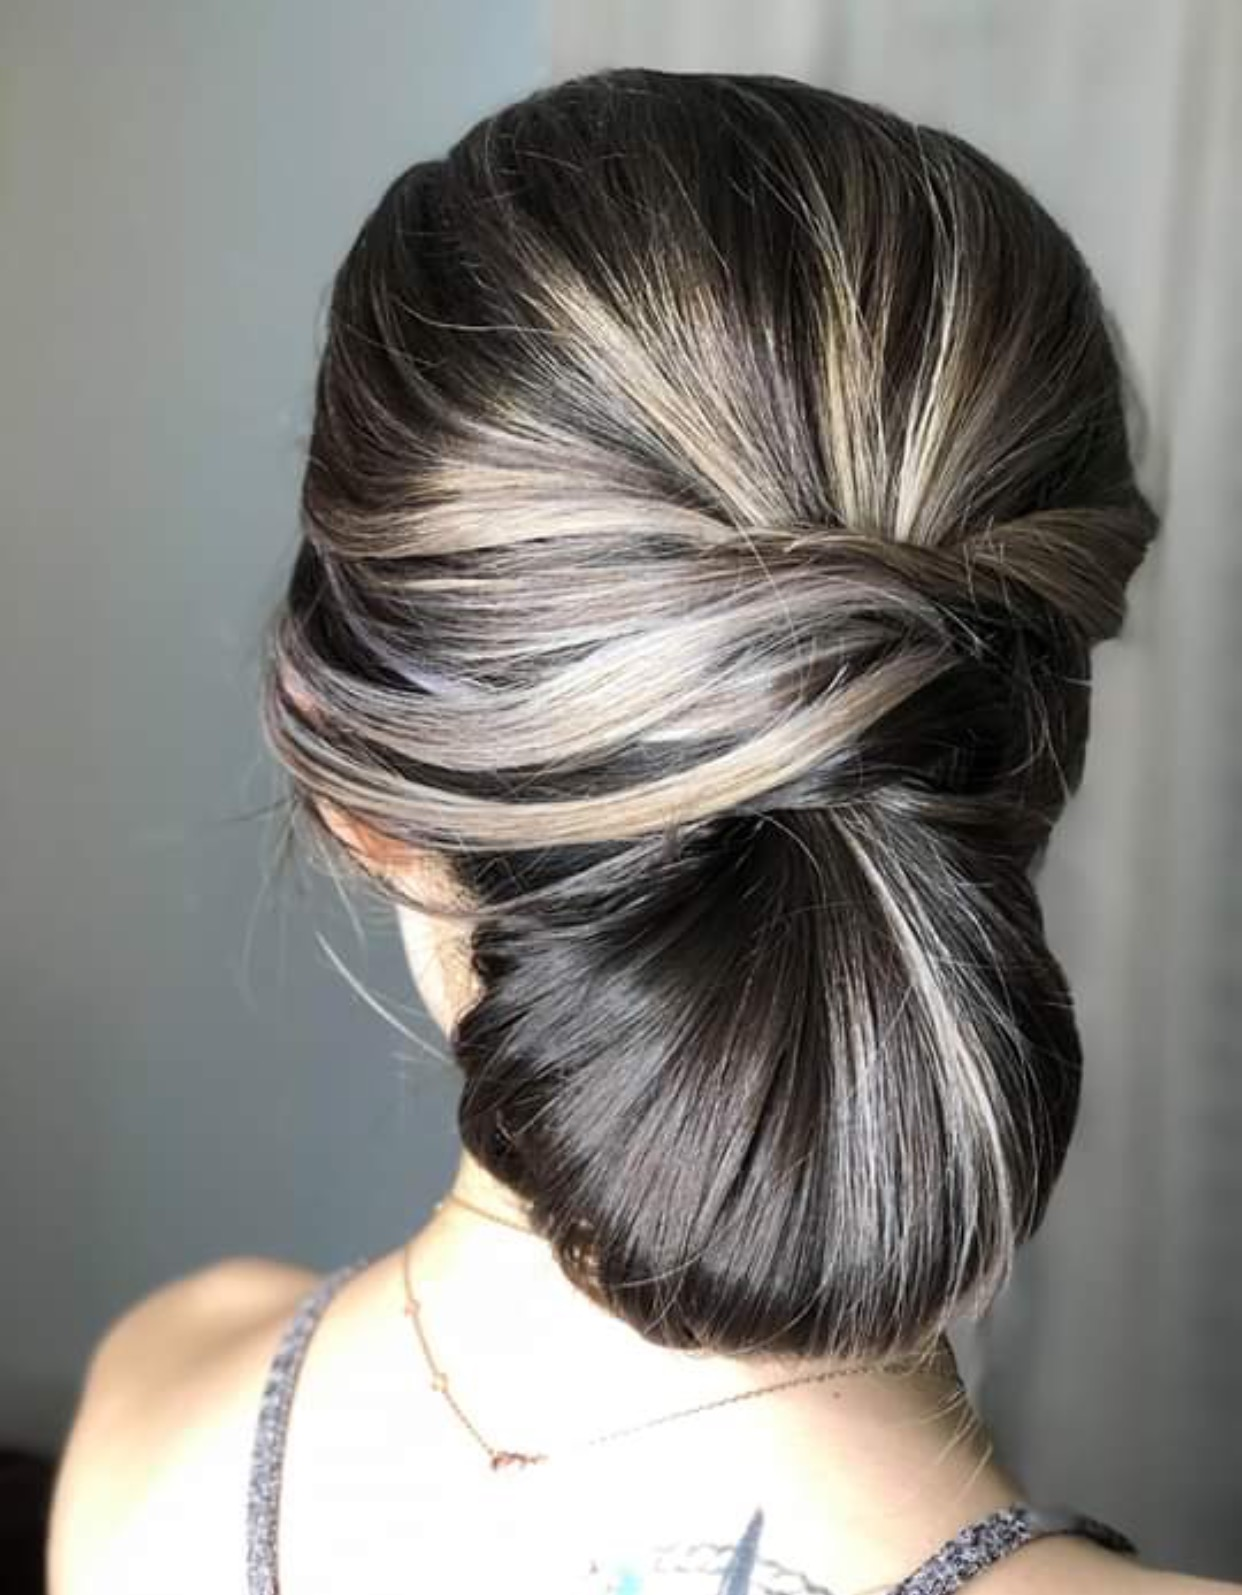 """- 4. THE FRENCH KNOTA CHIGNON IS TYPICALLY A WONDERFUL CHOICE FOR A BRIDE LOOKING FOR A CLASSIC BRIDAL APPEARANCE. THIS """"KNOT"""" AT THE NAPE OF THE NECK CAN BE TAILORED TO YOUR PERSONALITY IN A VARIETY OF WAYS; MODERNIZED WITH A BRAID, OR WITH AN ELEGANT TWIST, OR EVENT JUST SIMPLY STATED, THIS LOOK WILL SURELY REMAIN BEAUTIFUL FOR YEARS TO COME....BRIDE: LAUREN KLEINHAIR STYLIST: EMILY KLEIN SMITH"""